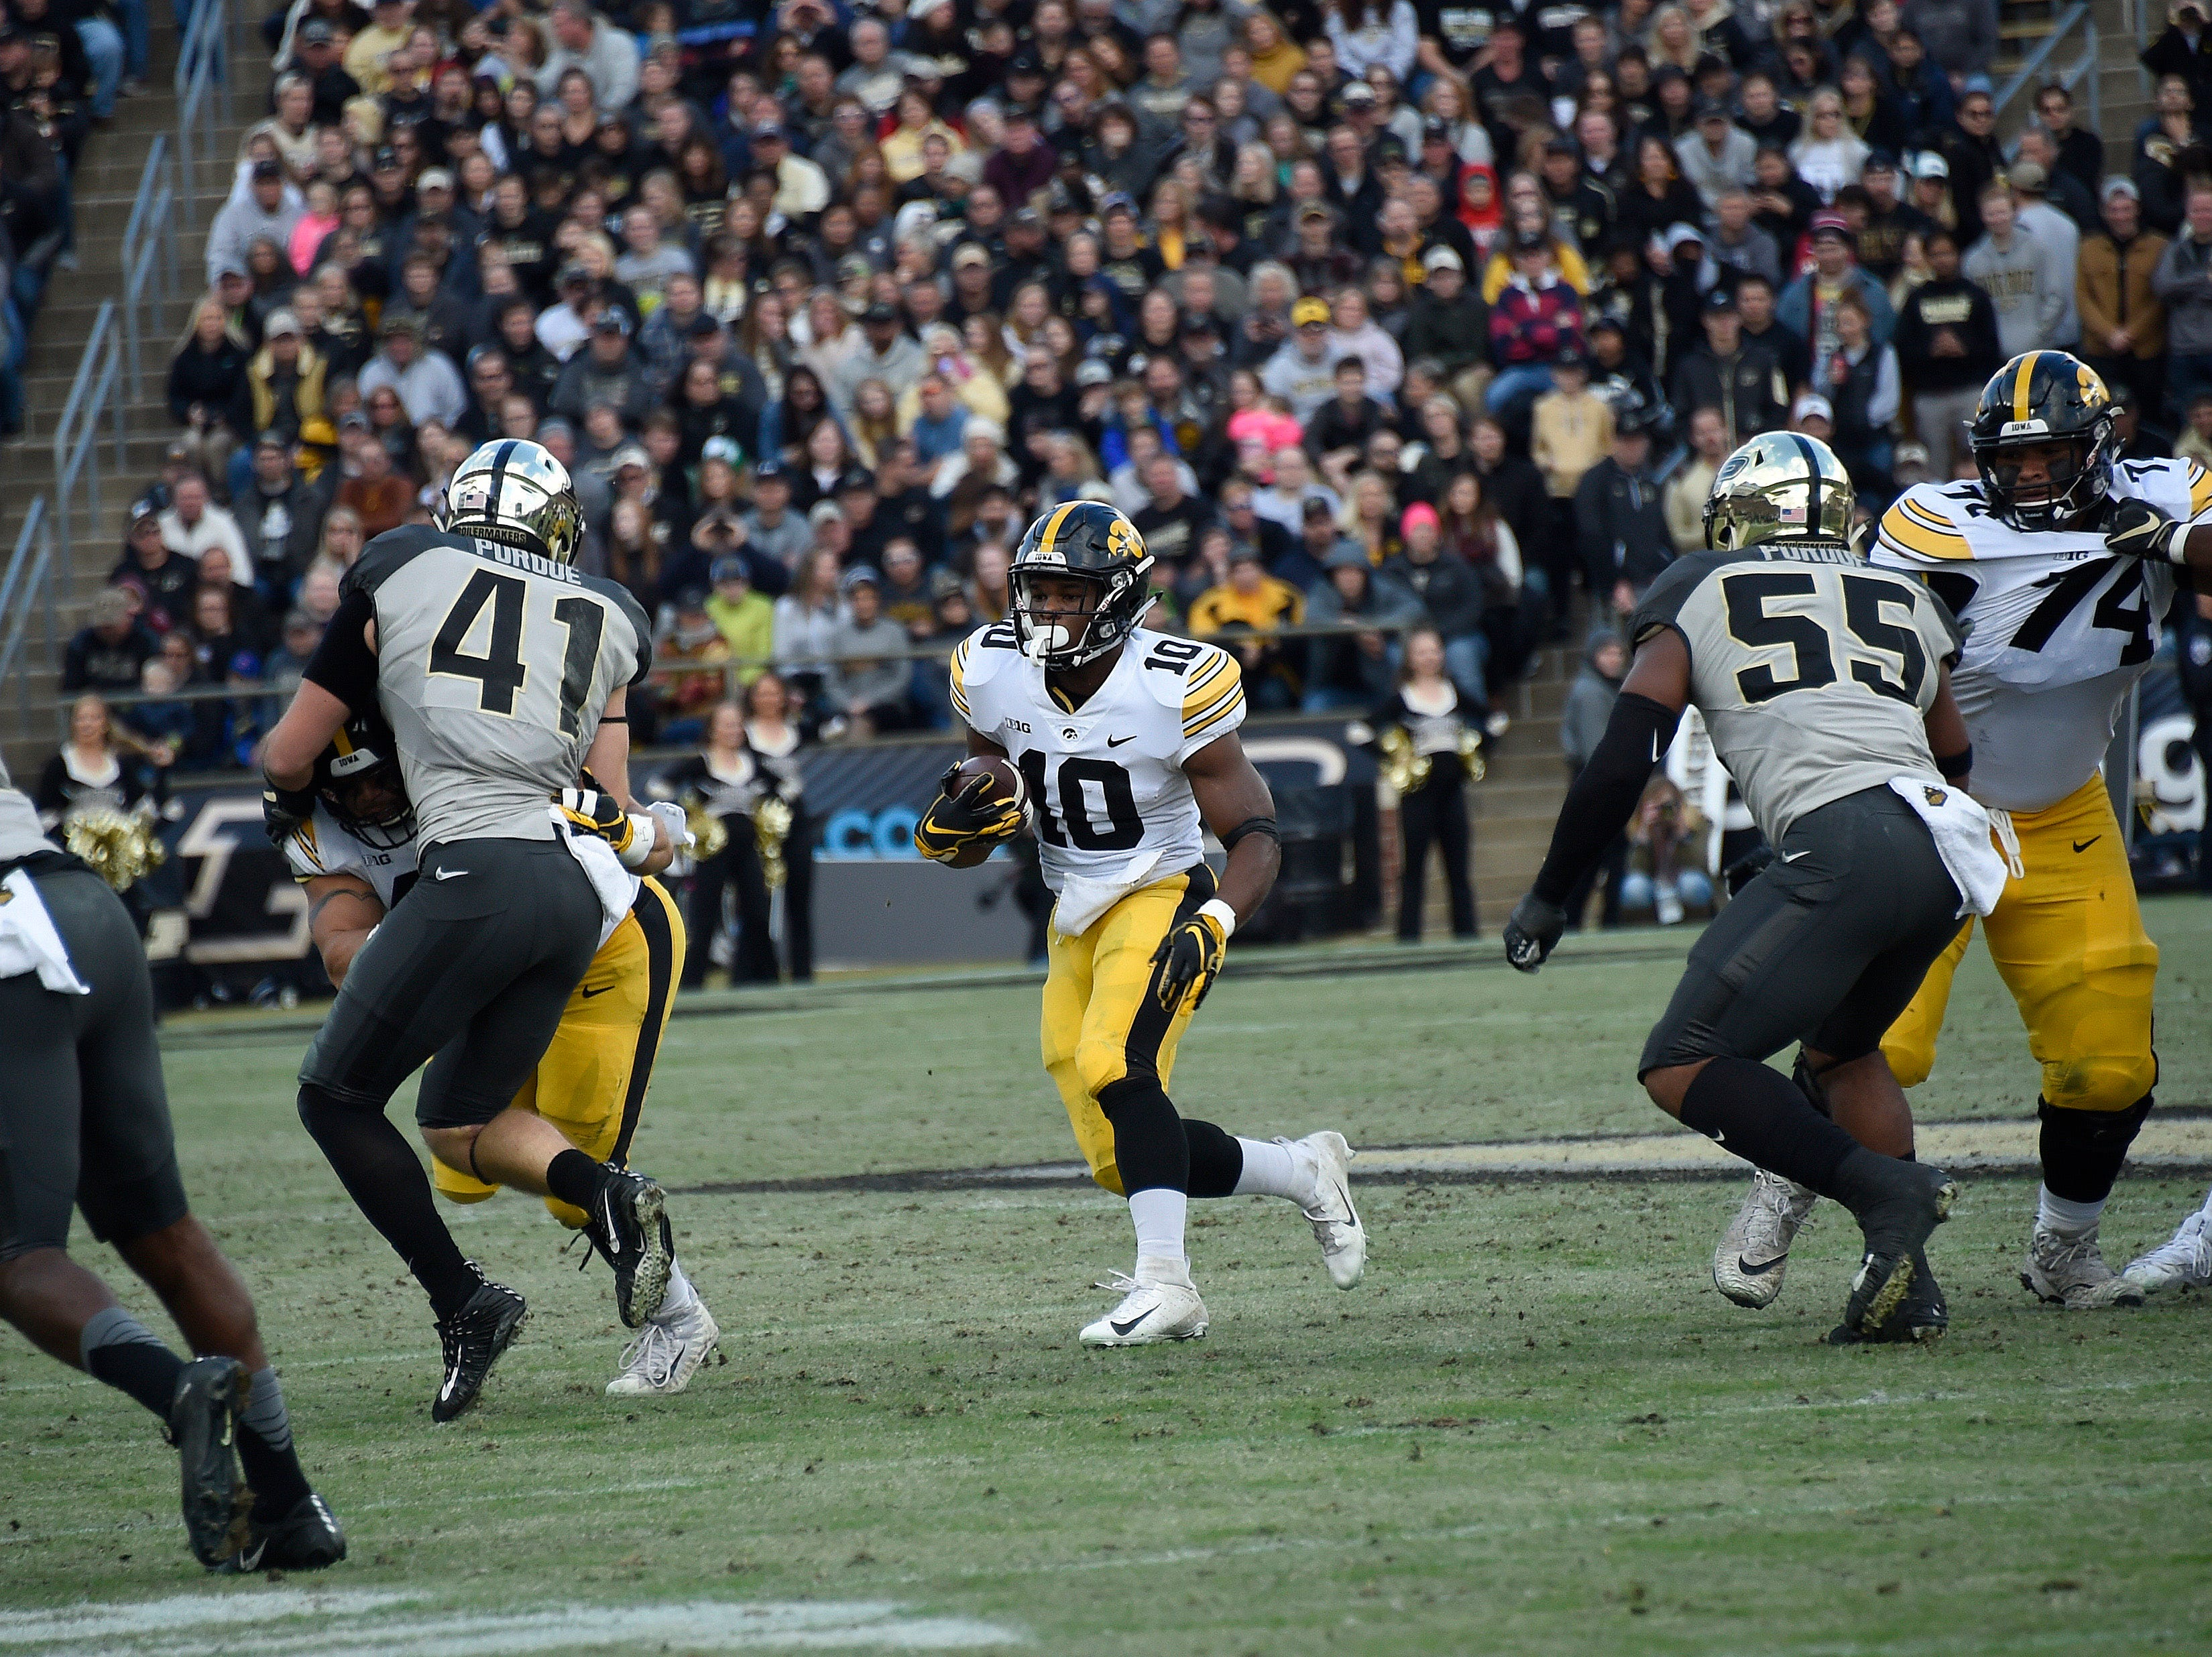 Nov 3, 2018; West Lafayette, IN, USA;  Iowa Hawkeyes running back Mekhi Sargent (10) looks for room to run between defenders Purdue Boilermakers safety Jacob Thieneman (41) and linebacker Derrick Barnes (55) at Ross-Ade Stadium.